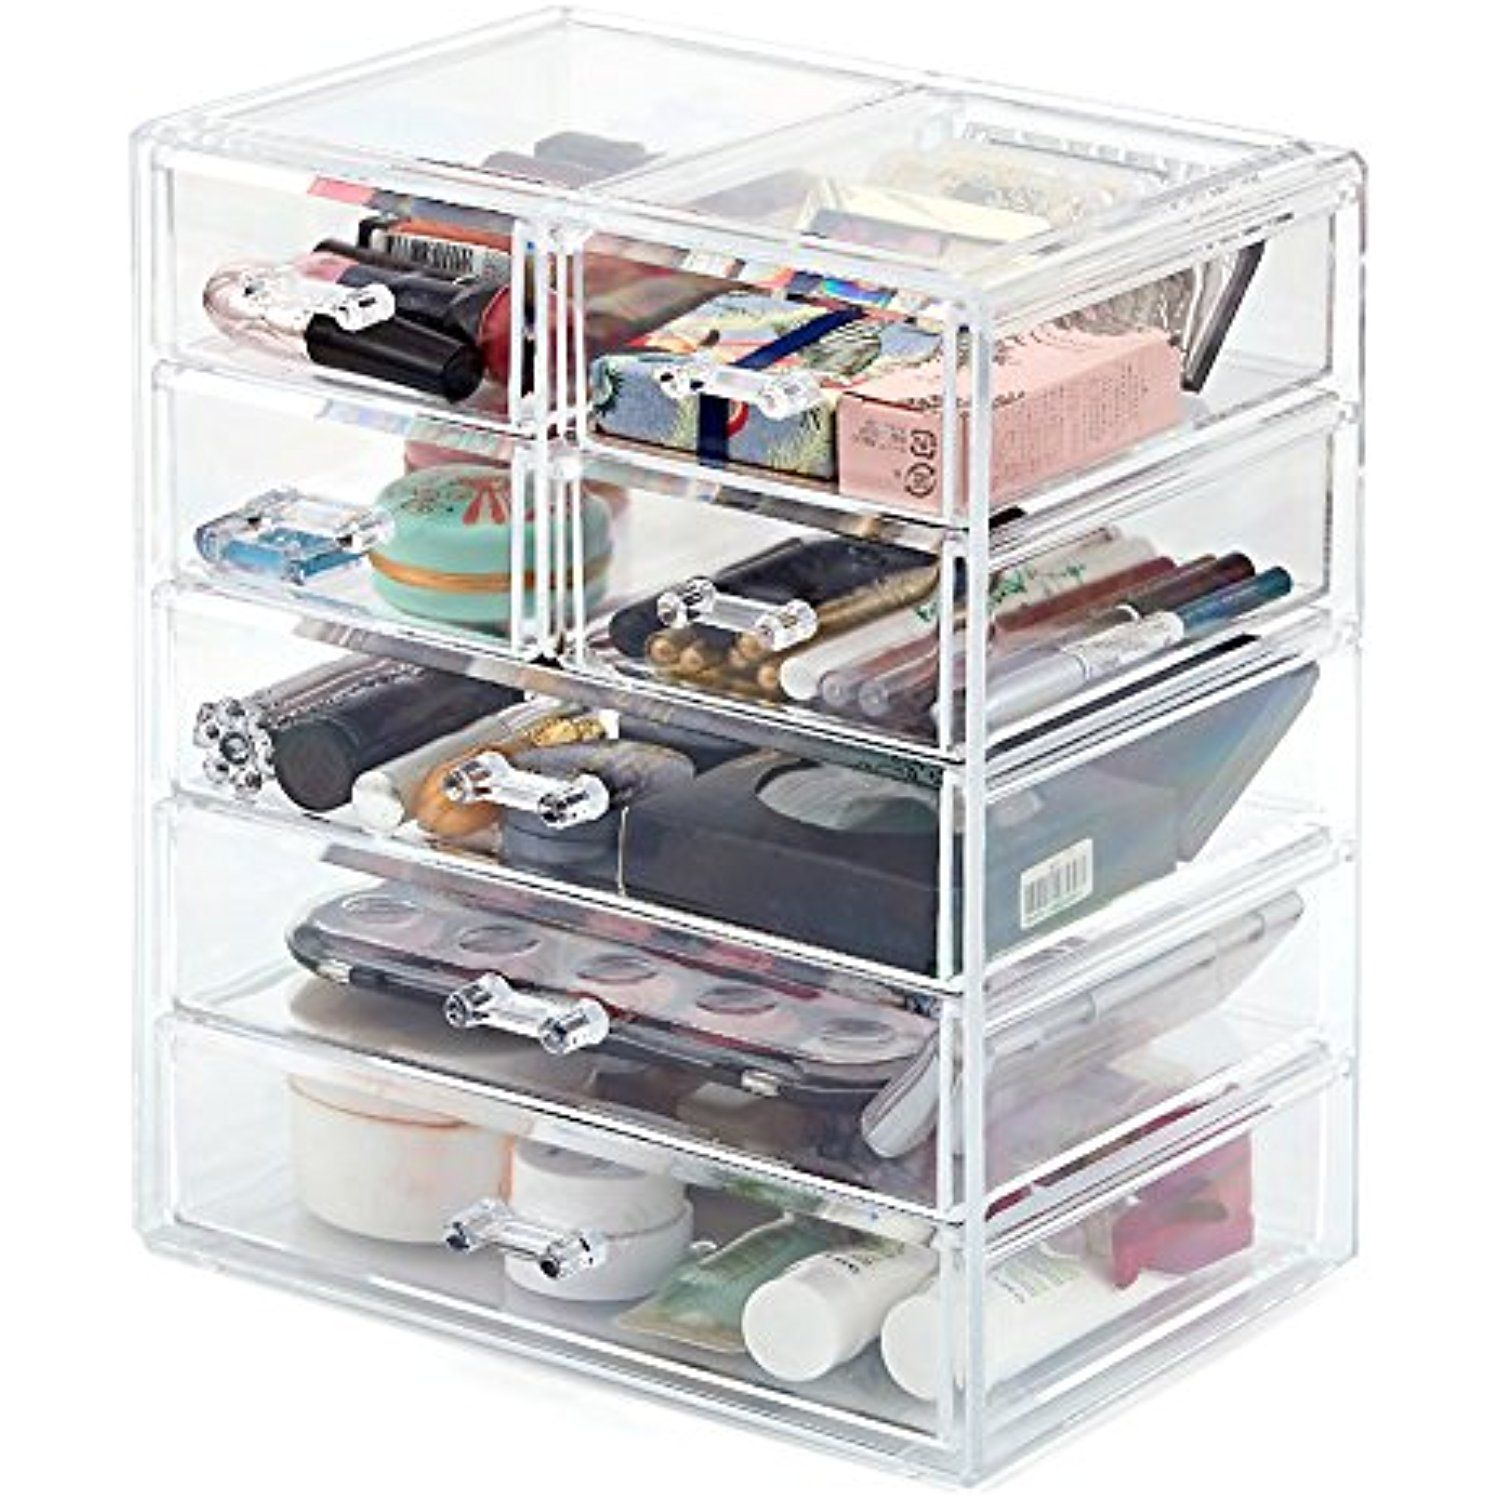 Makeup Organizer EZOWare Acrylic Cosmetic Organizer with 7 Drawer